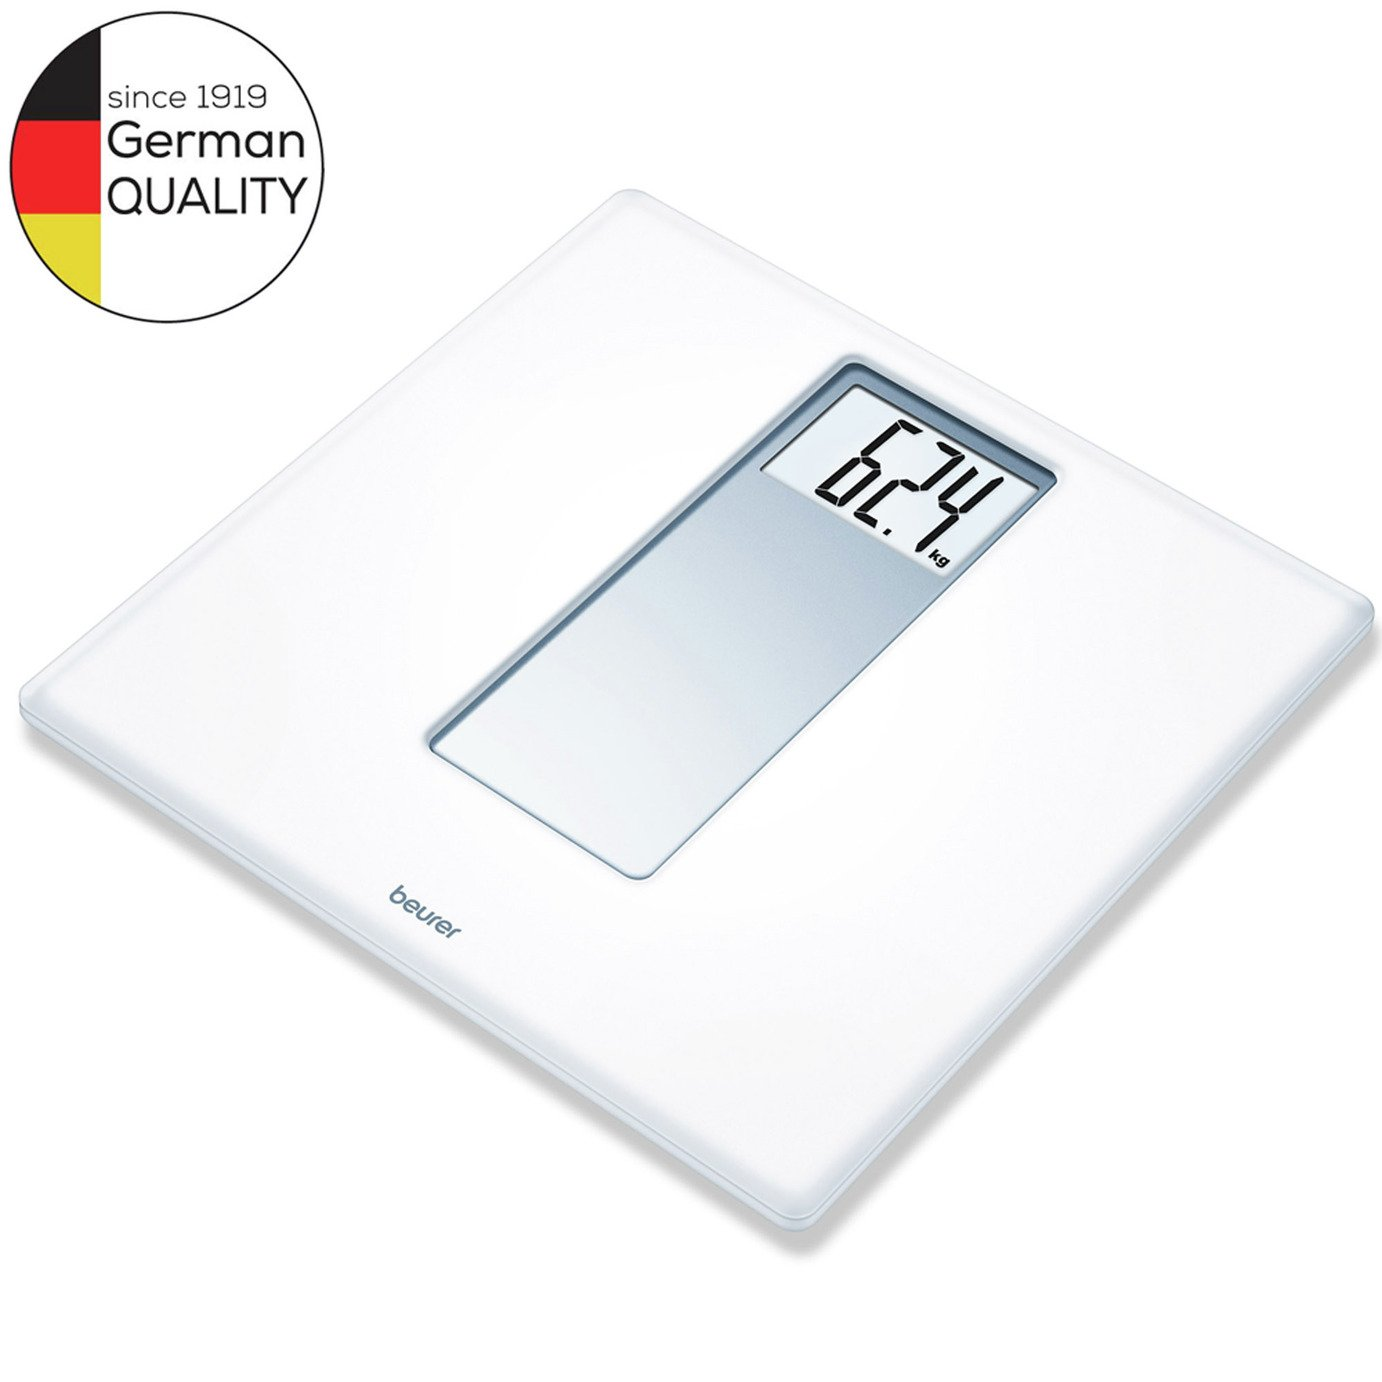 Beurer PS160 XXL Digits Acrylic Bathroom Scale - White